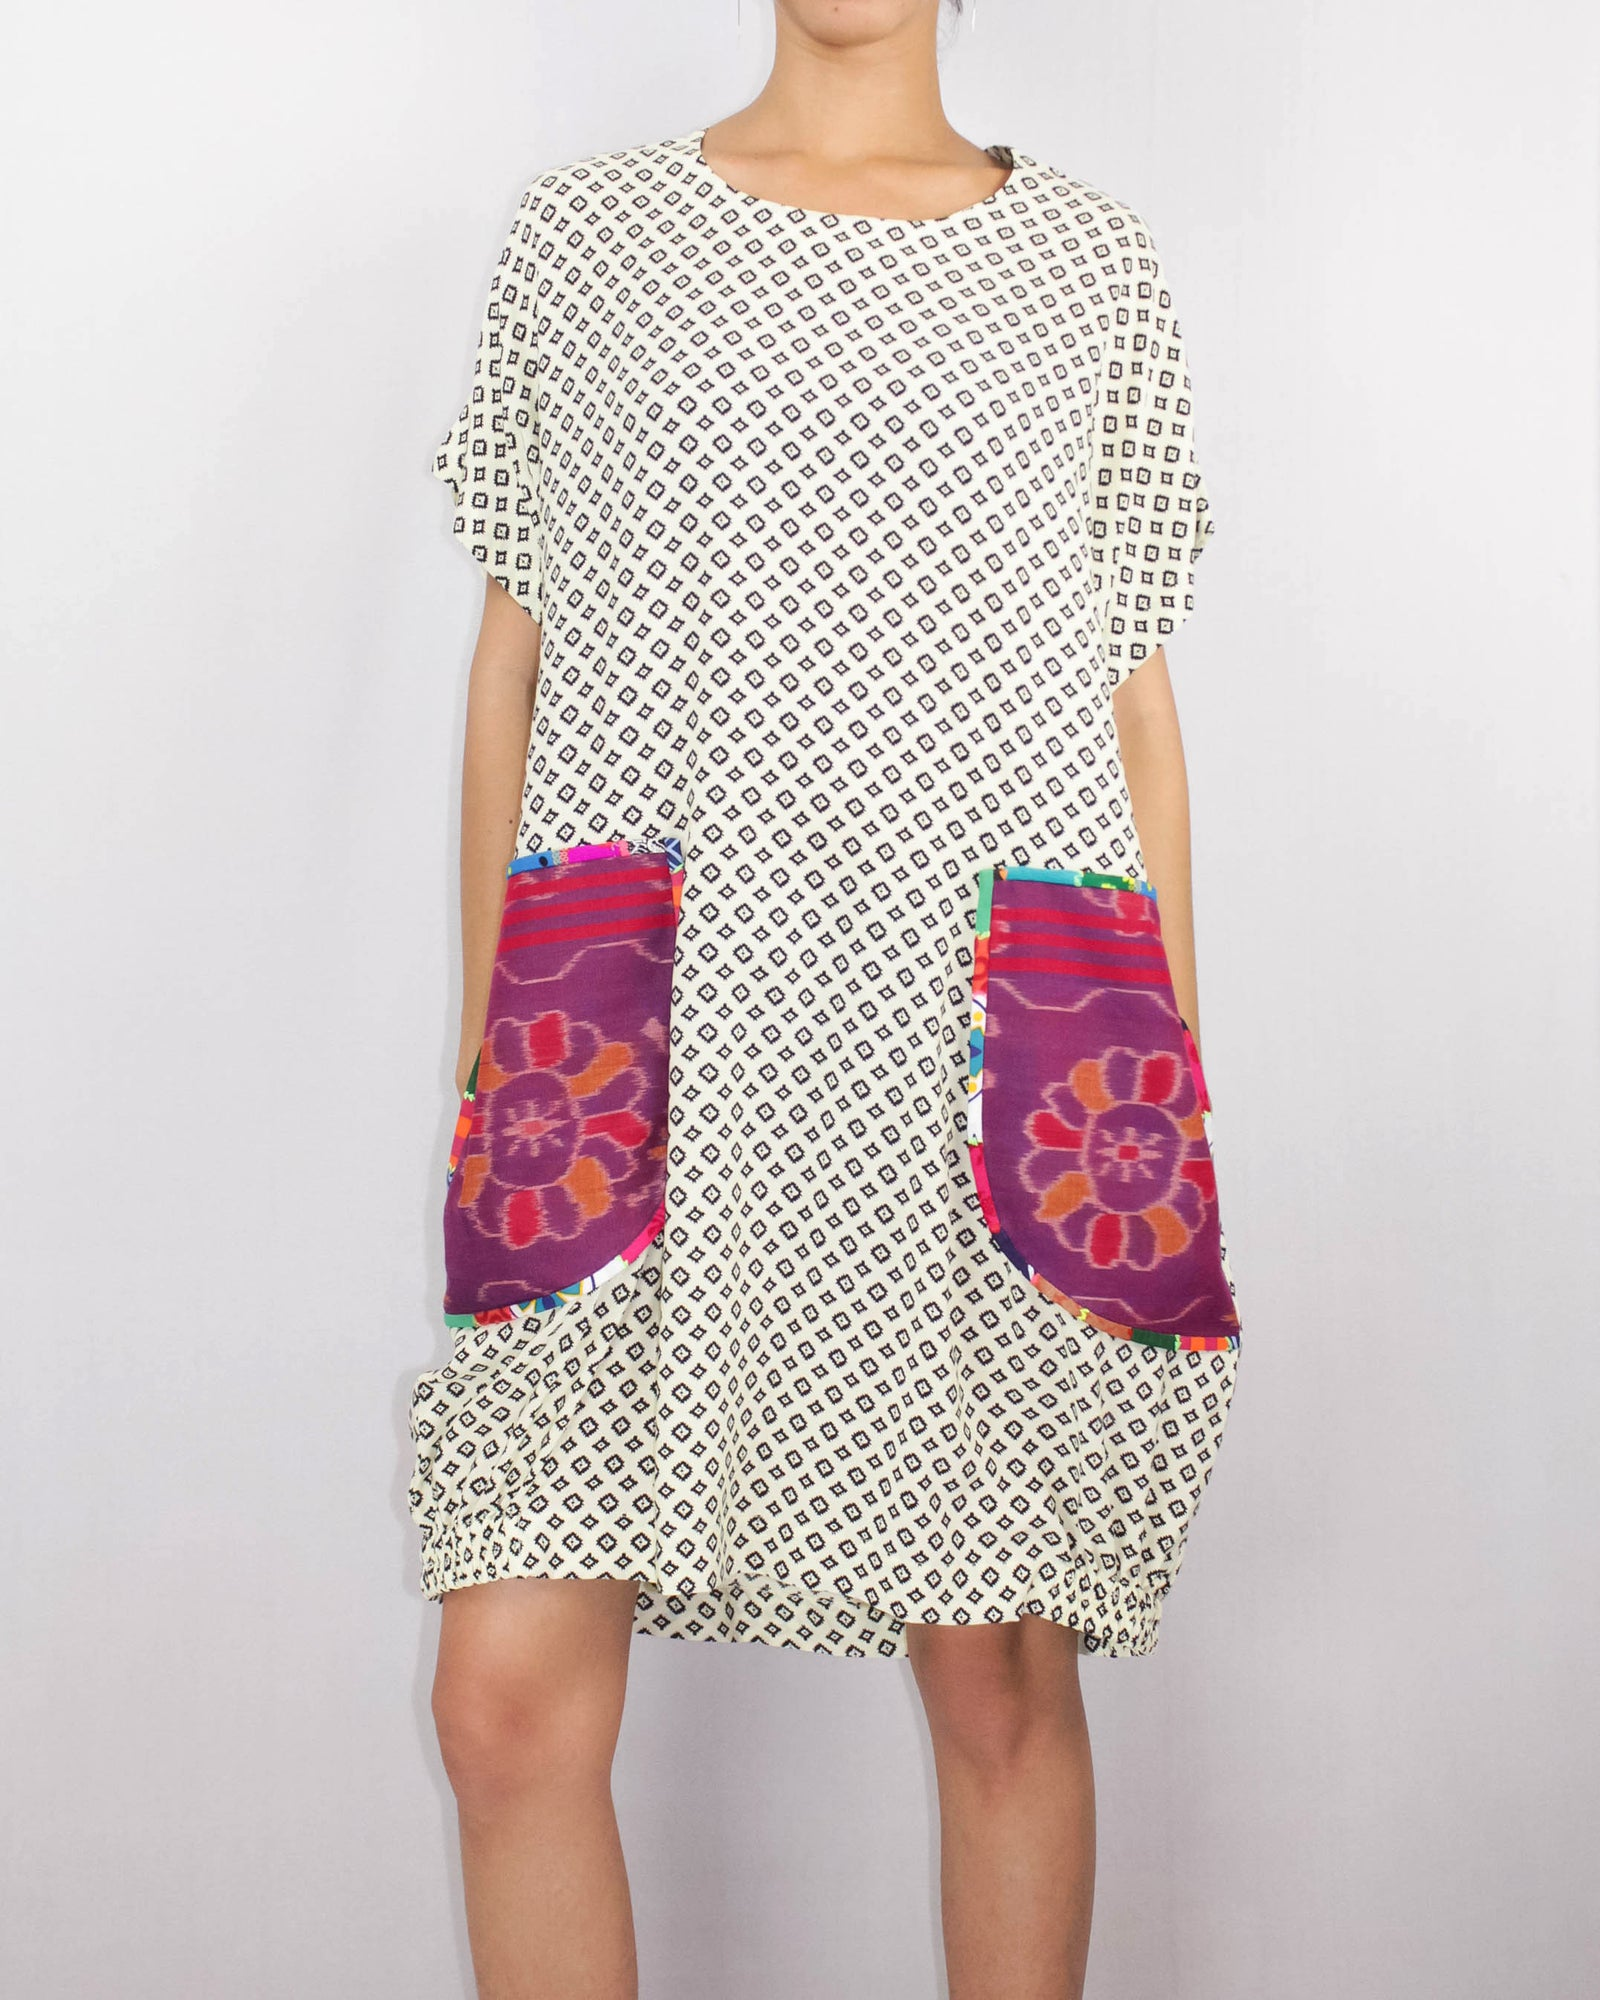 Cotton Shift Dress with ikat pockets by ragmatazz